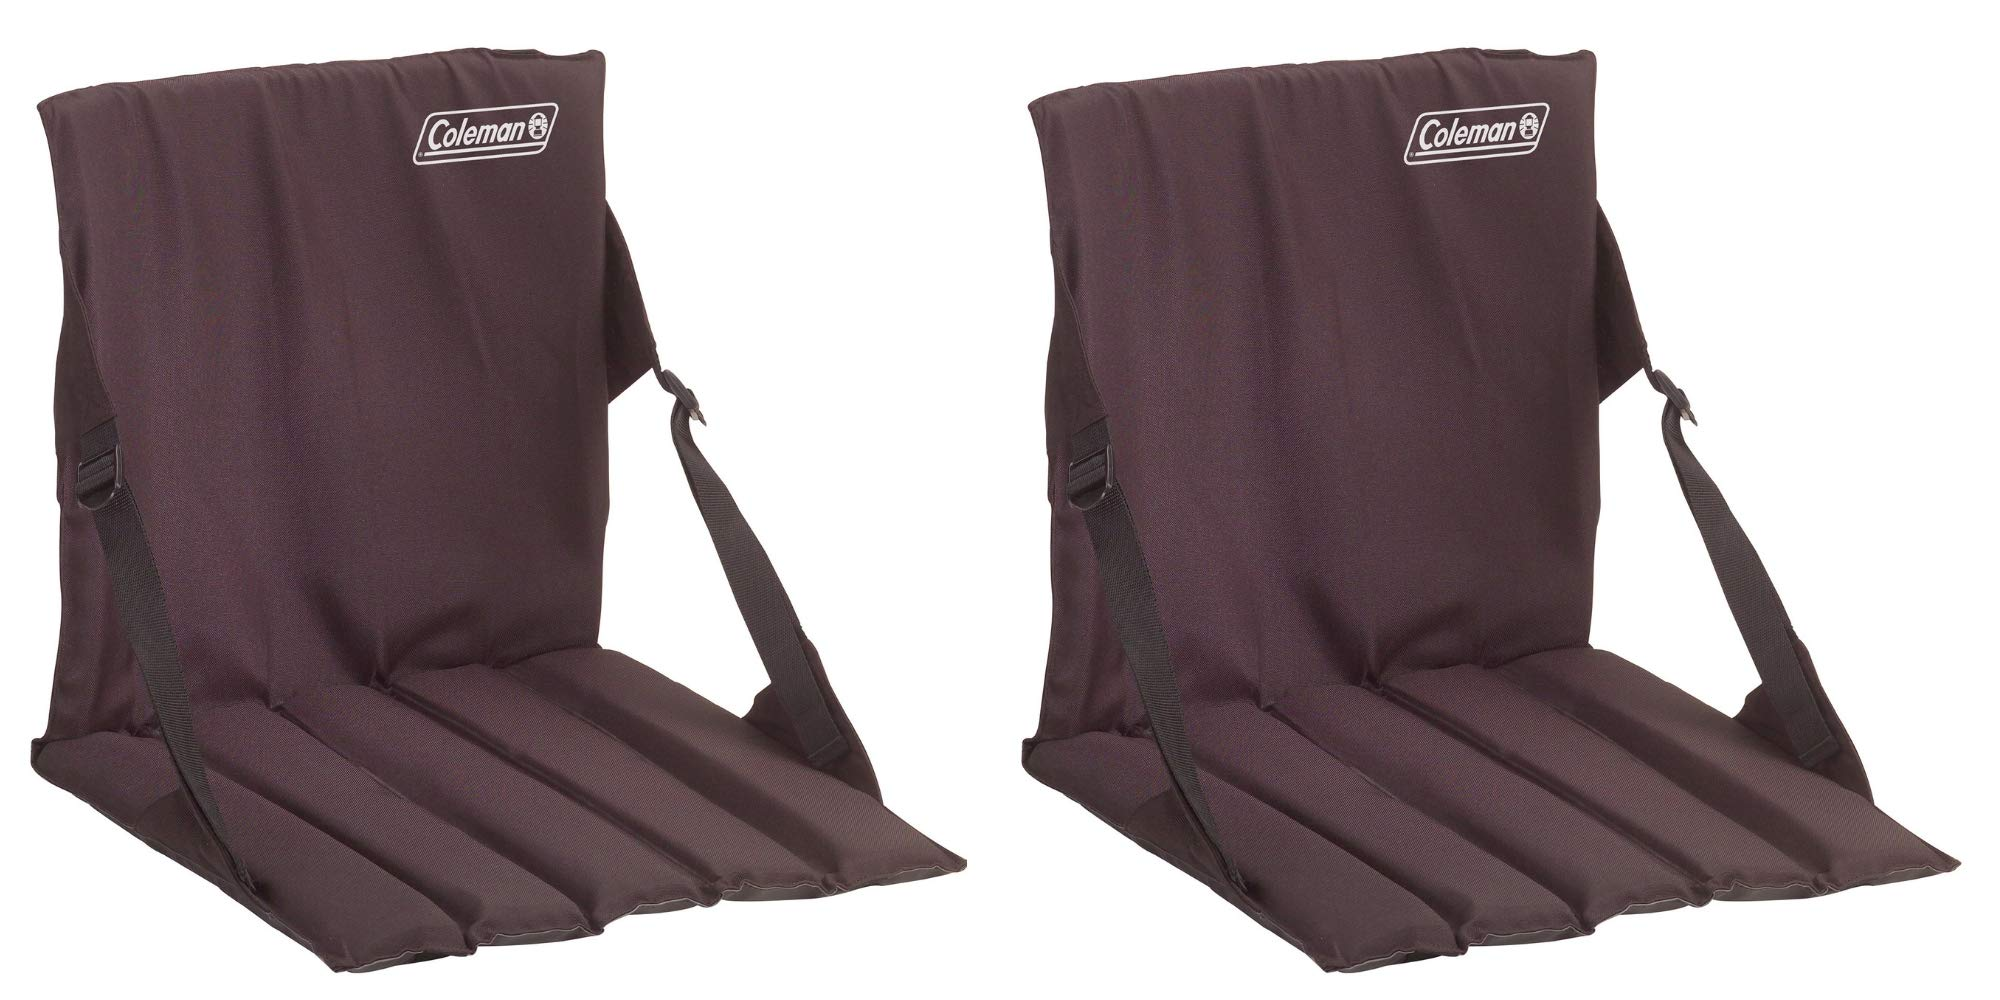 Coleman Stadium Seat, Black/Pack of 2 by Coleman